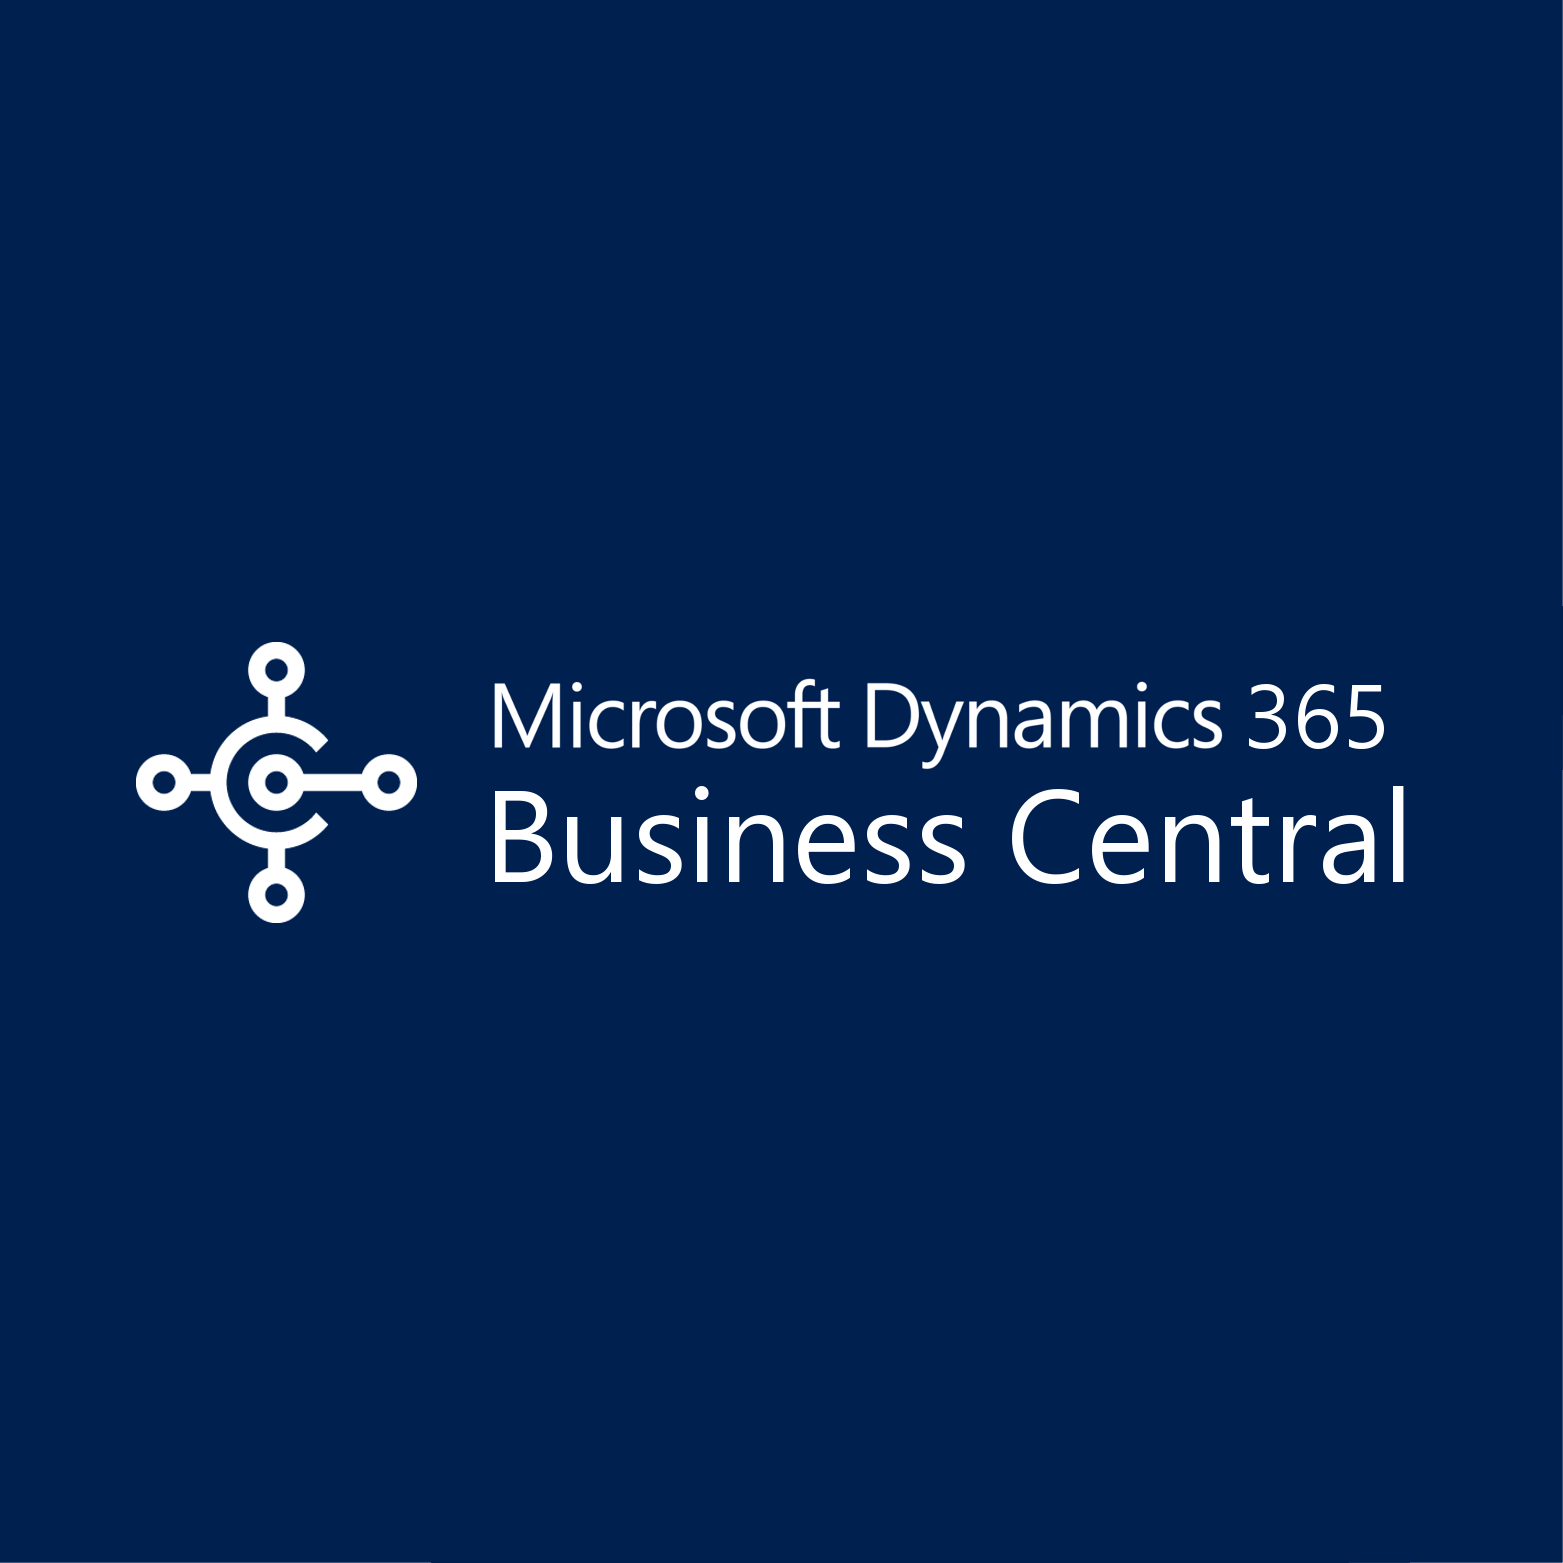 MS Dynamics 365 Business Central